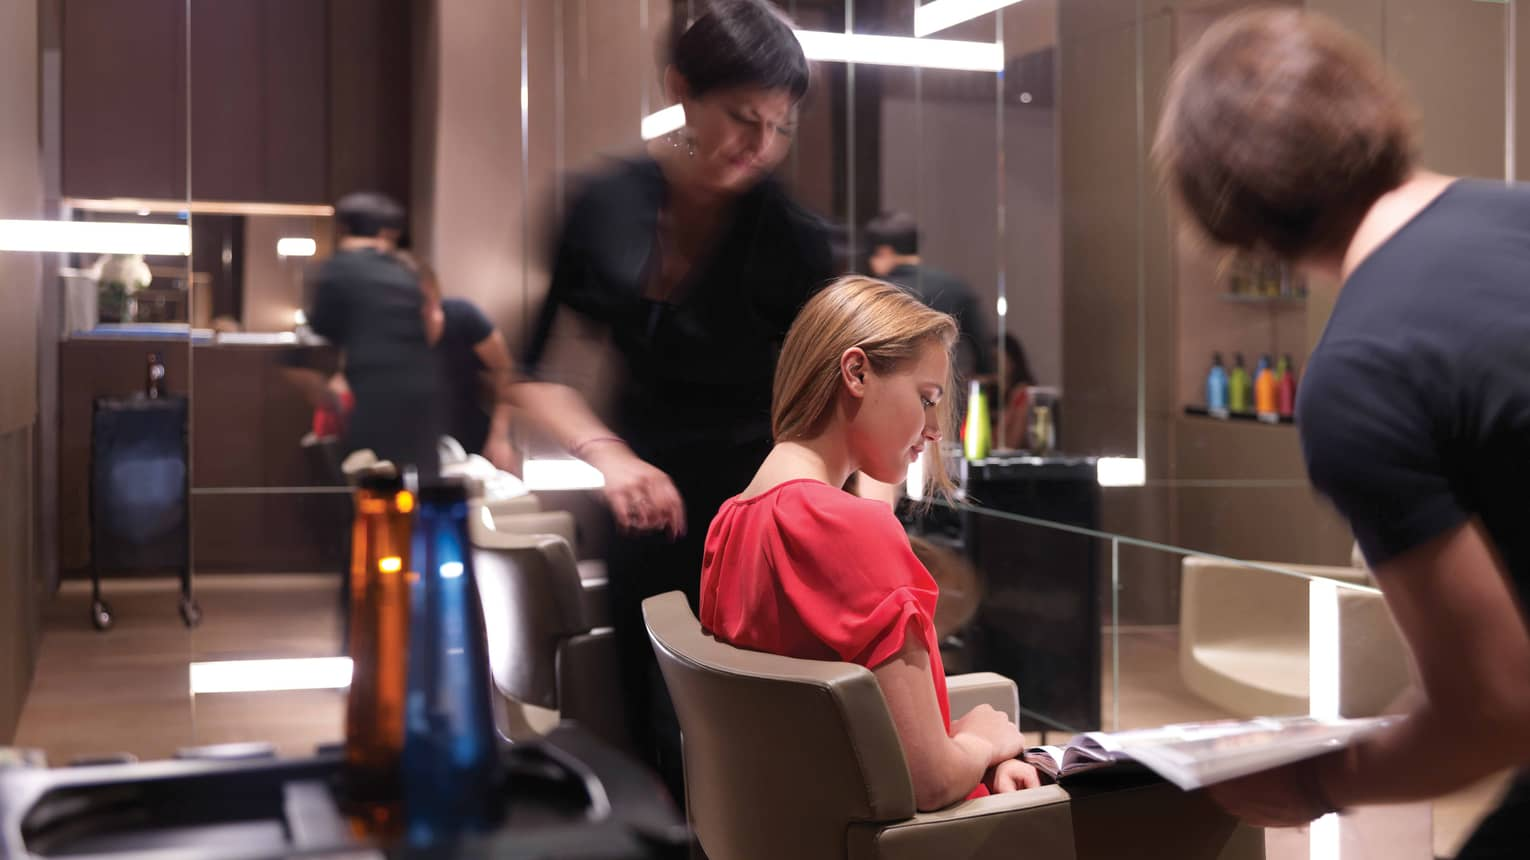 Woman in salon chair at Rossano Ferretti Hair Salon as stylists work around her